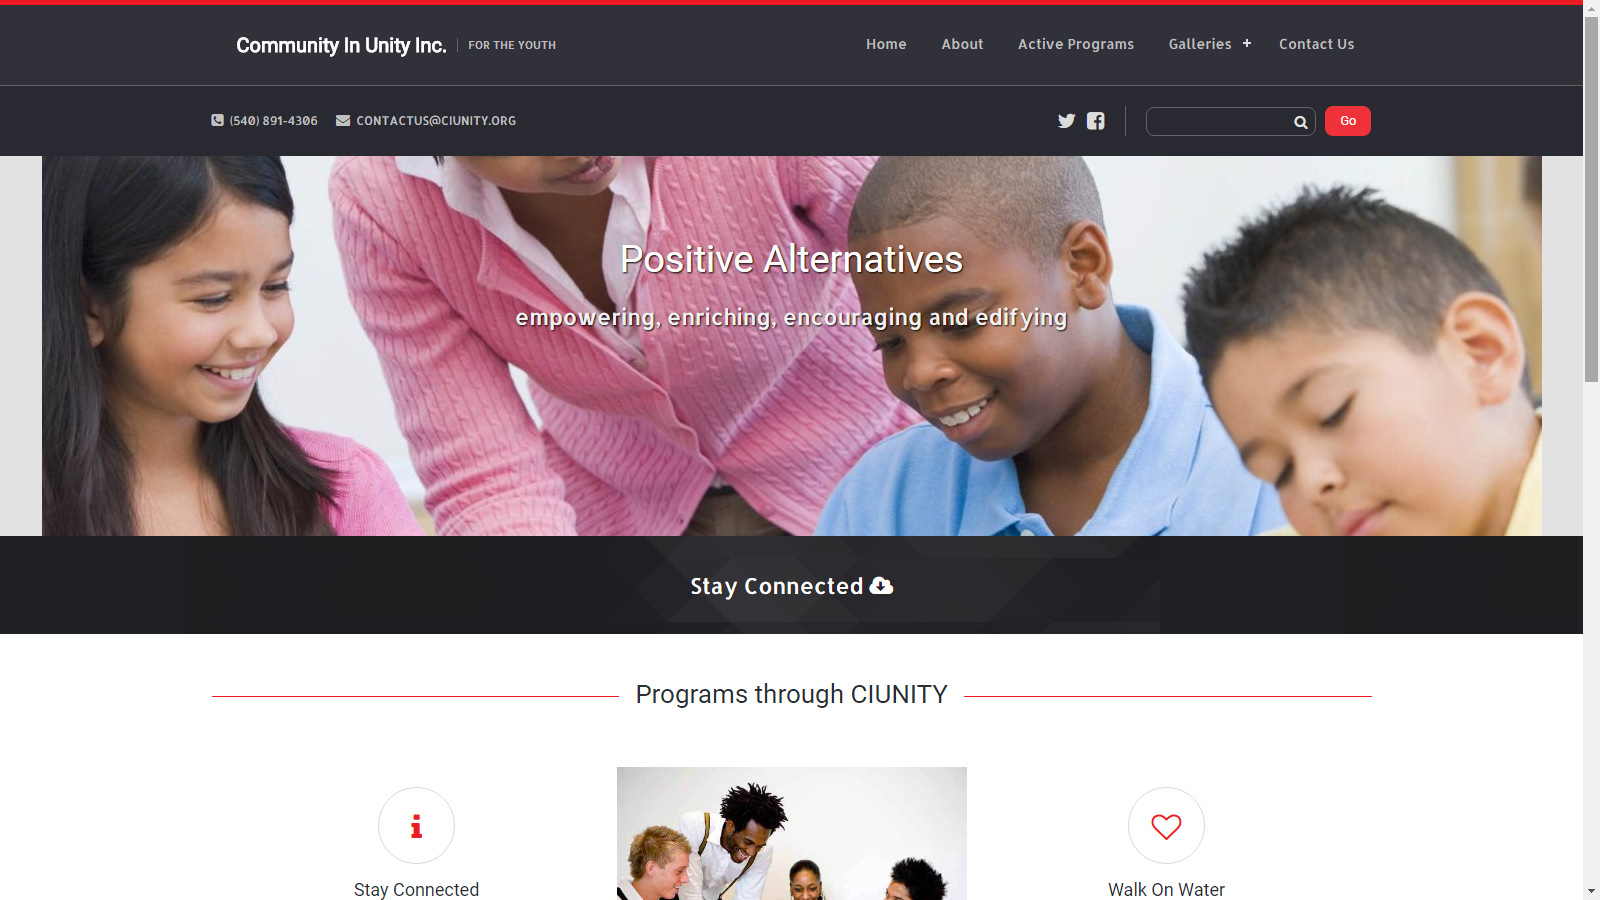 Community In Unity Inc. - For the Youth